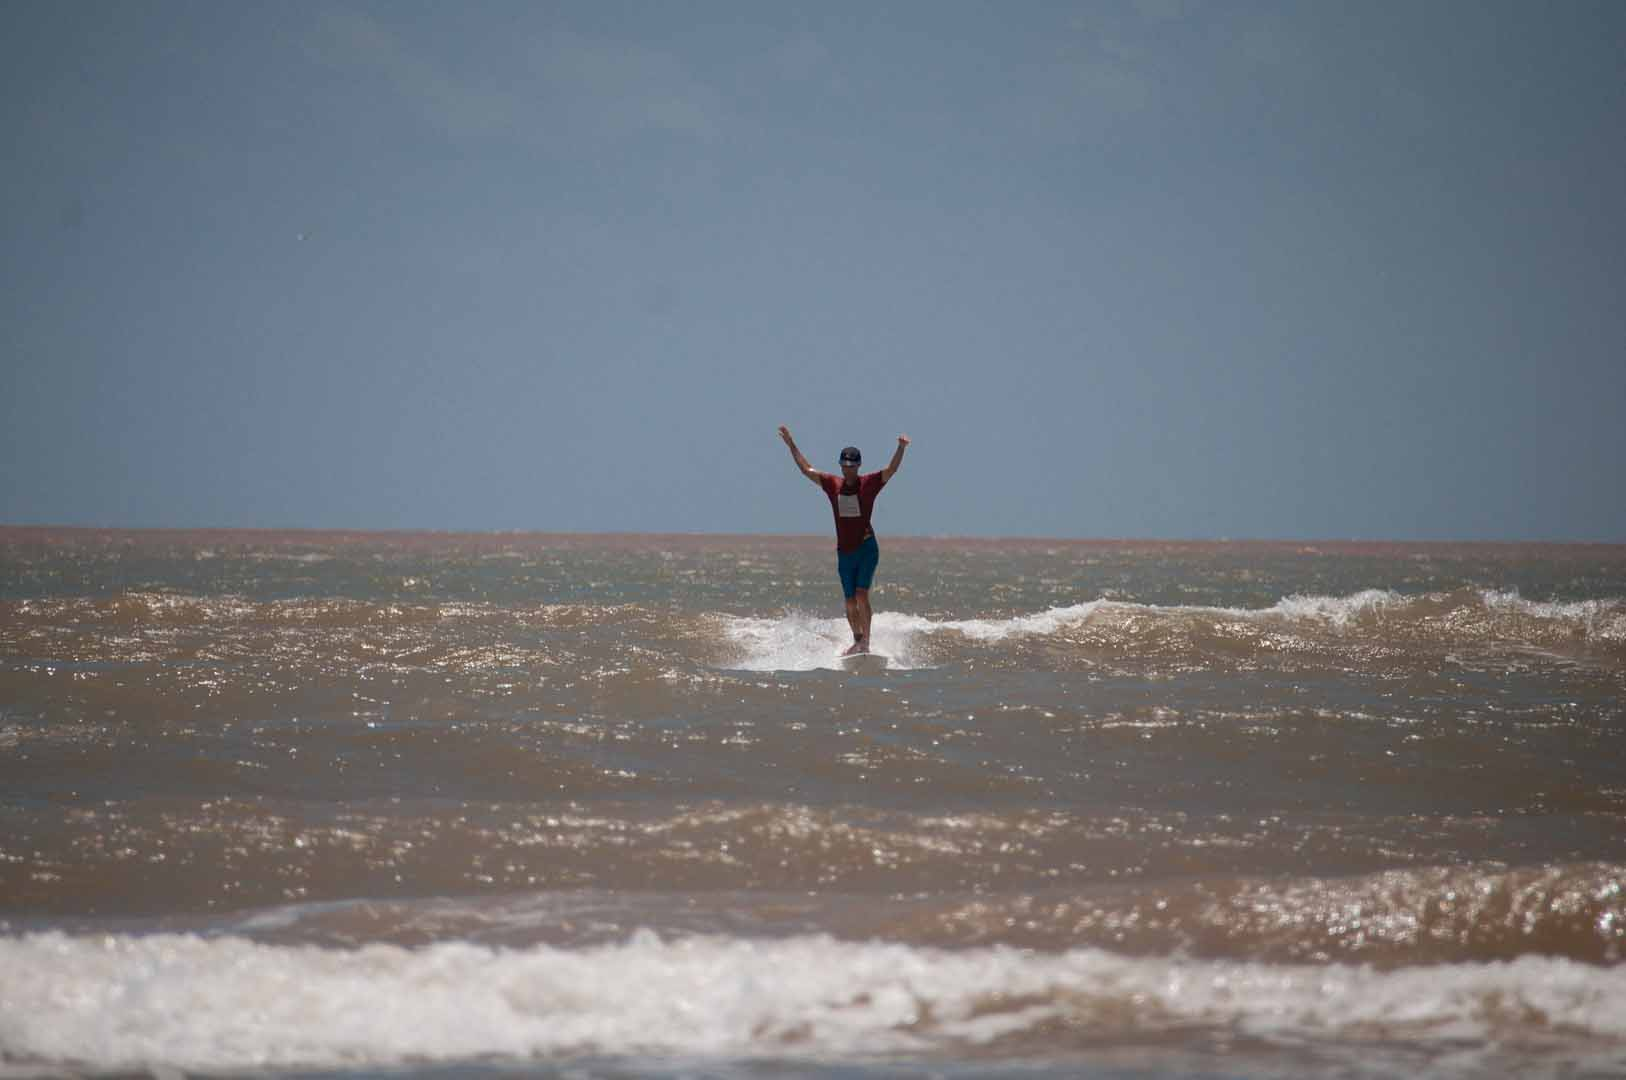 SurfsideLateJune_20150627_175